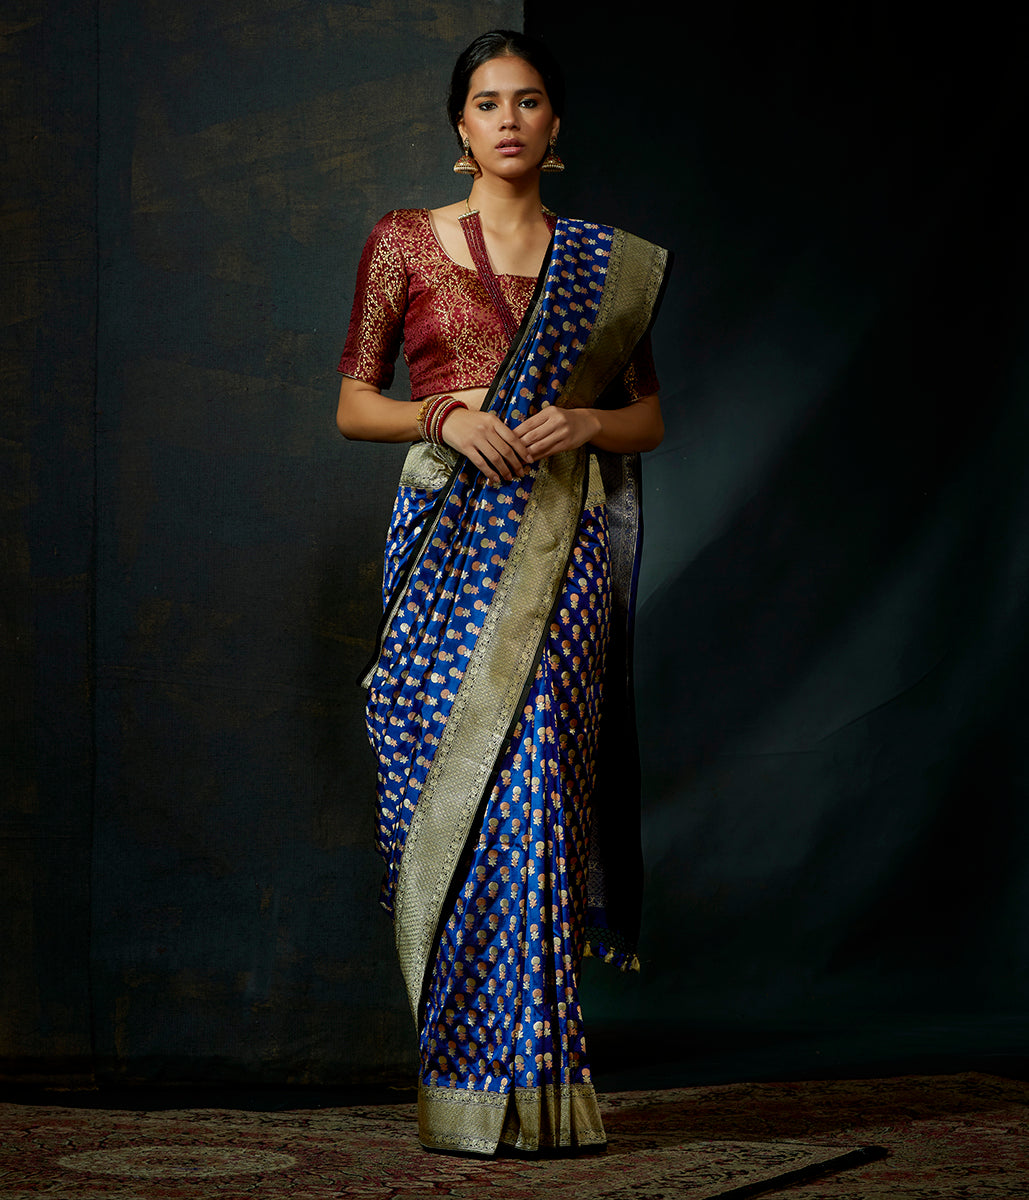 Royal Blue katan silk saree with small floral motifs and kadhwa border